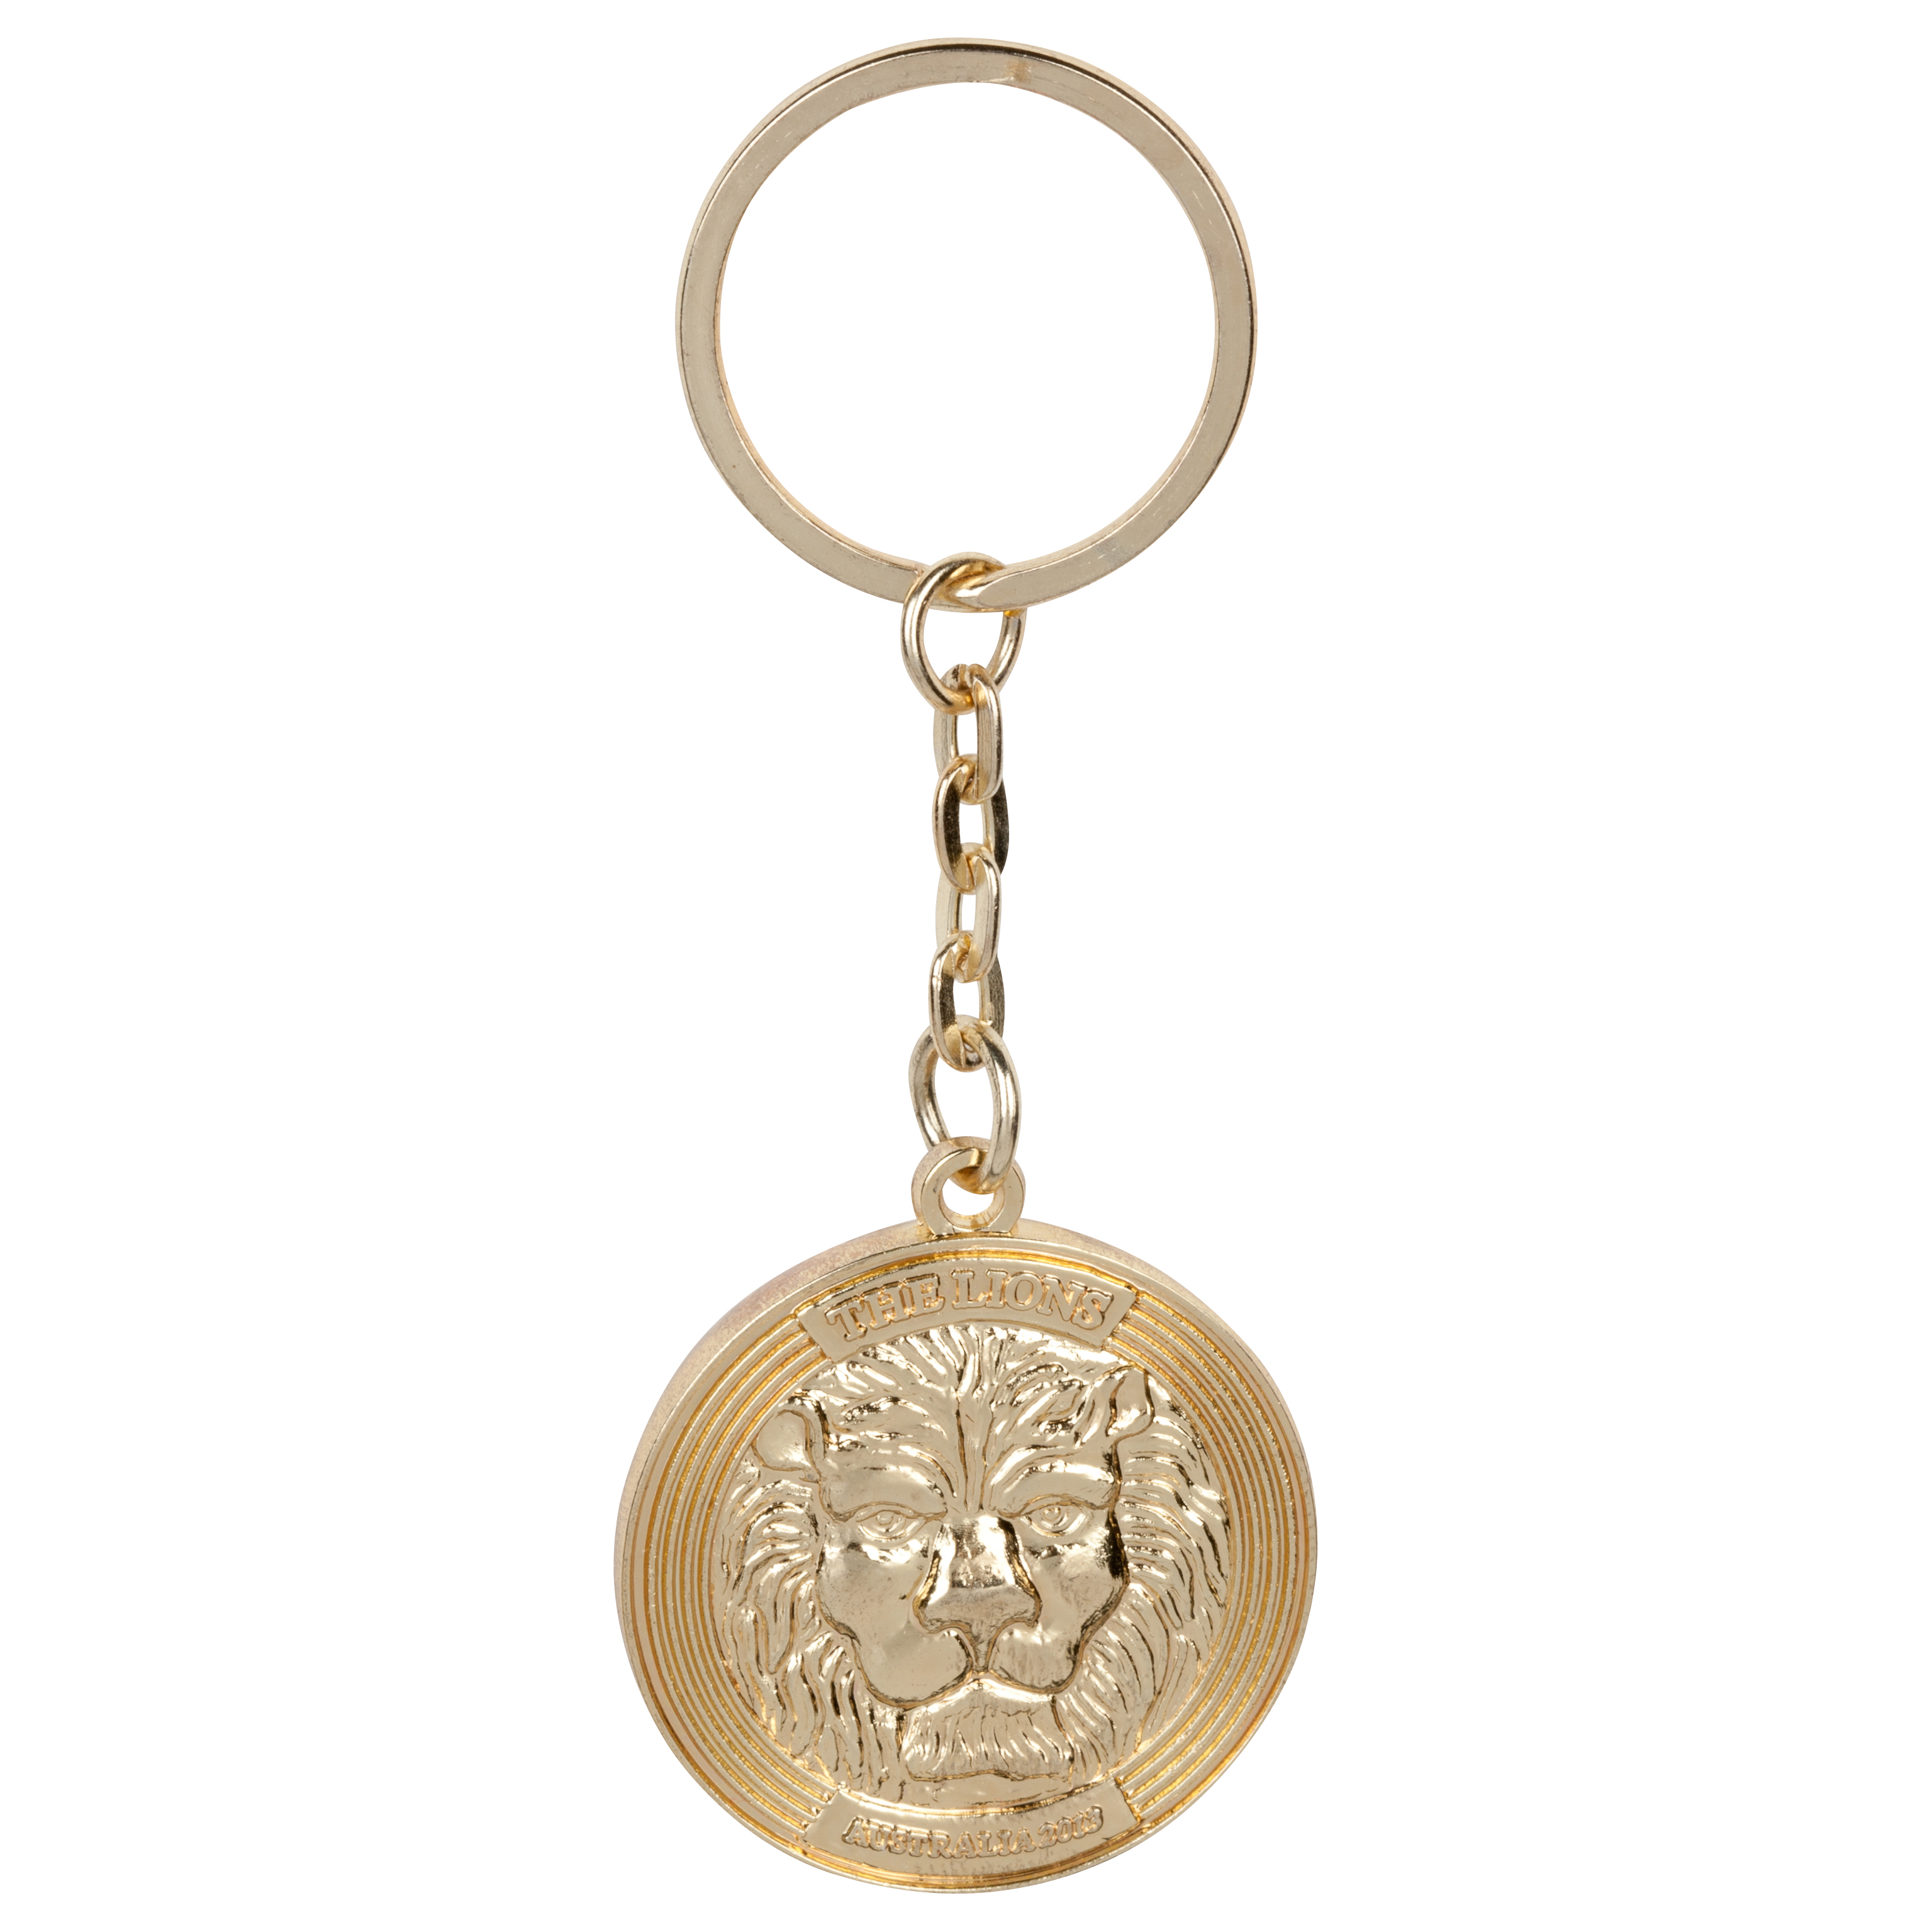 British & Irish Lions Coin Keyring